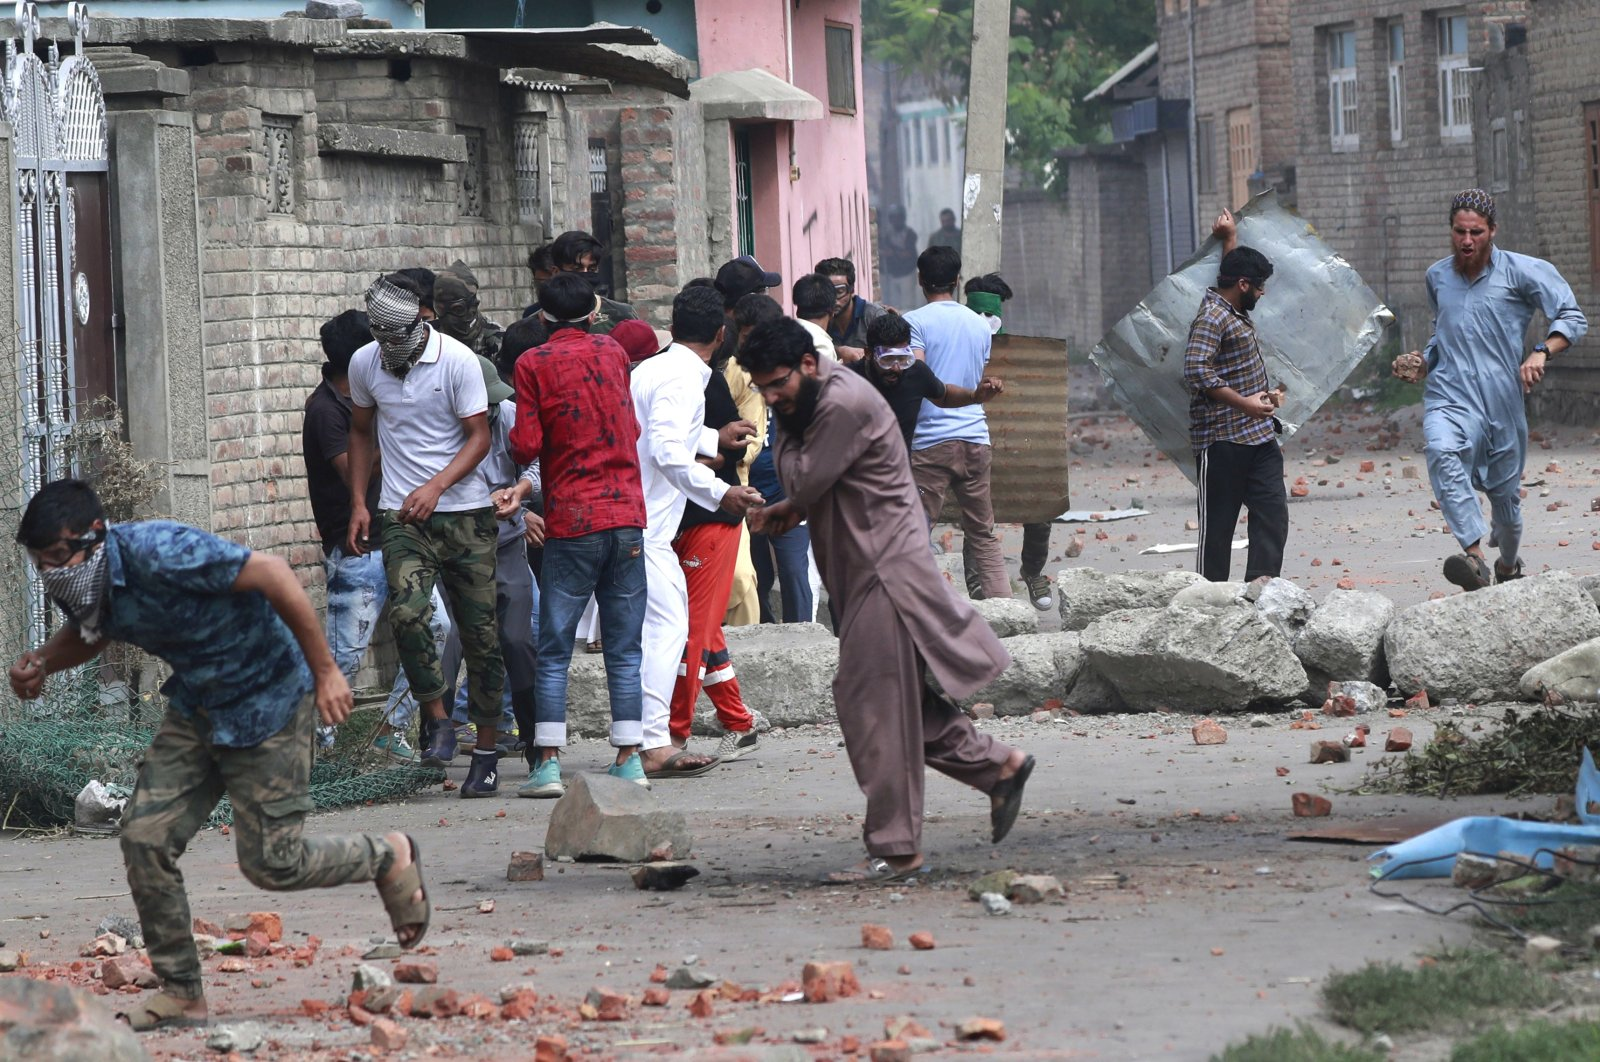 Kashmiris take cover as Indian security forces fire tear gas shells during clashes after the scrapping of the special constitutional status for Kashmir by the Indian government, Srinagar, Jammu and Kashmir, Aug. 30, 2019. (Reuters Photo)